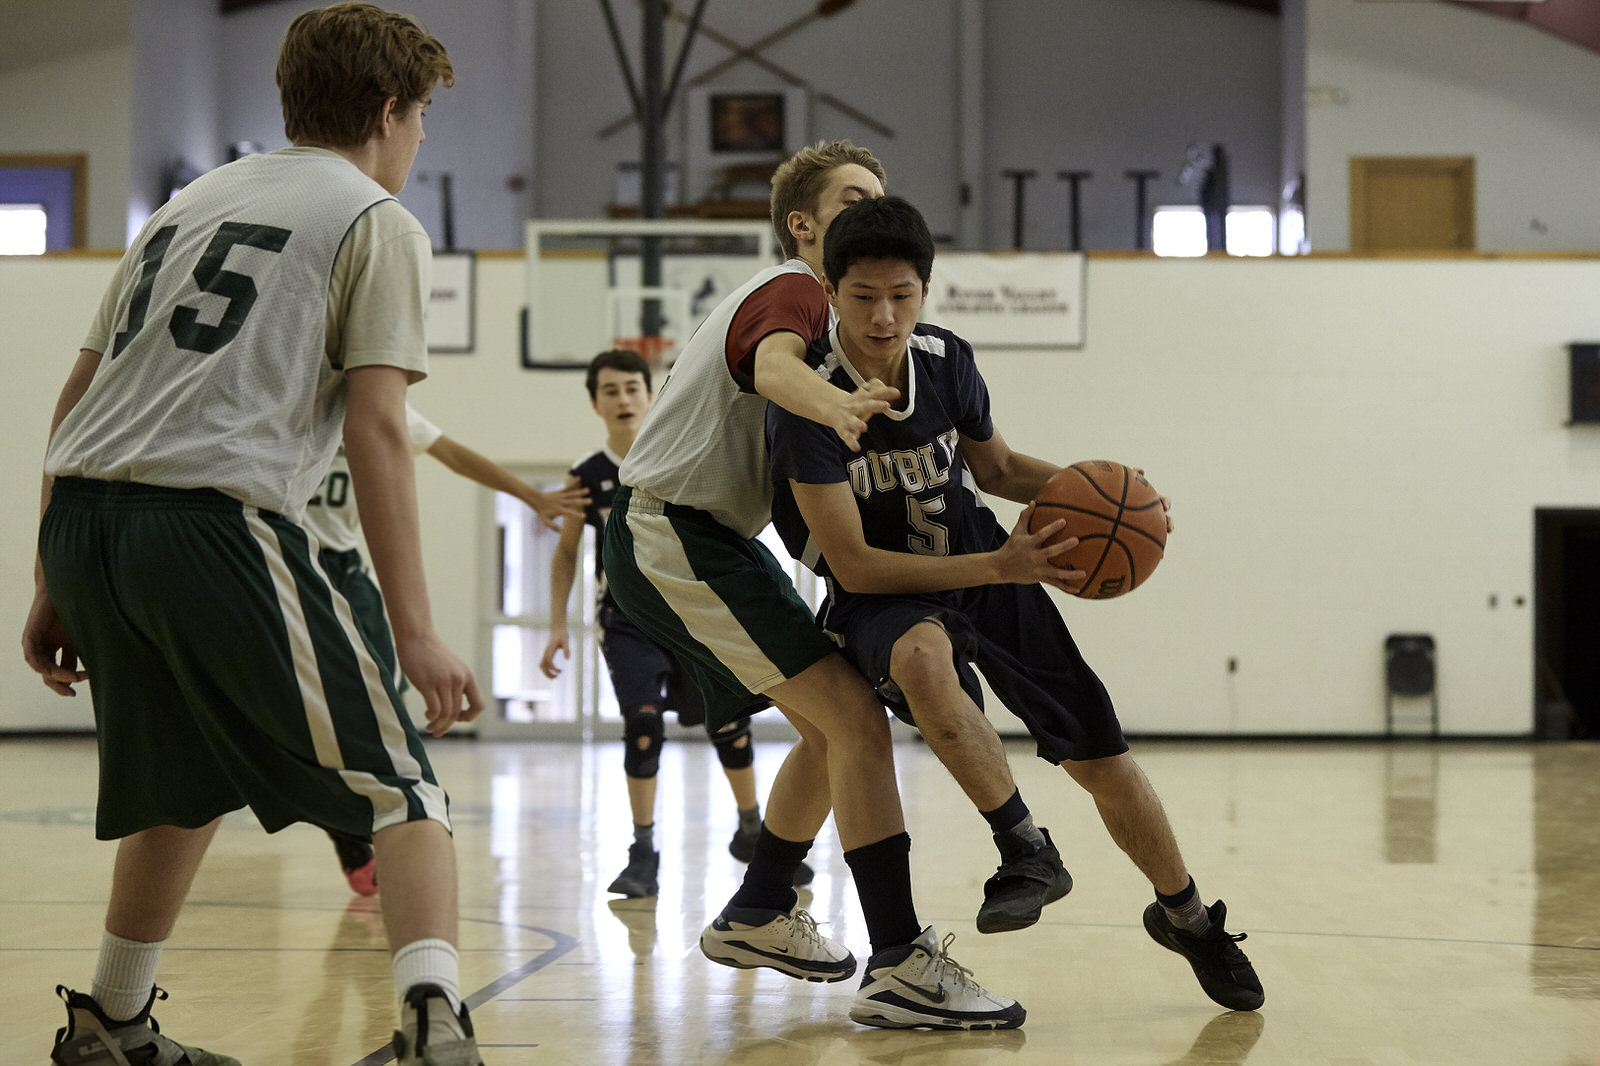 Dublin JV Boys Basketball vs High Mowing School - Jan 26 2019 - 0143.jpg